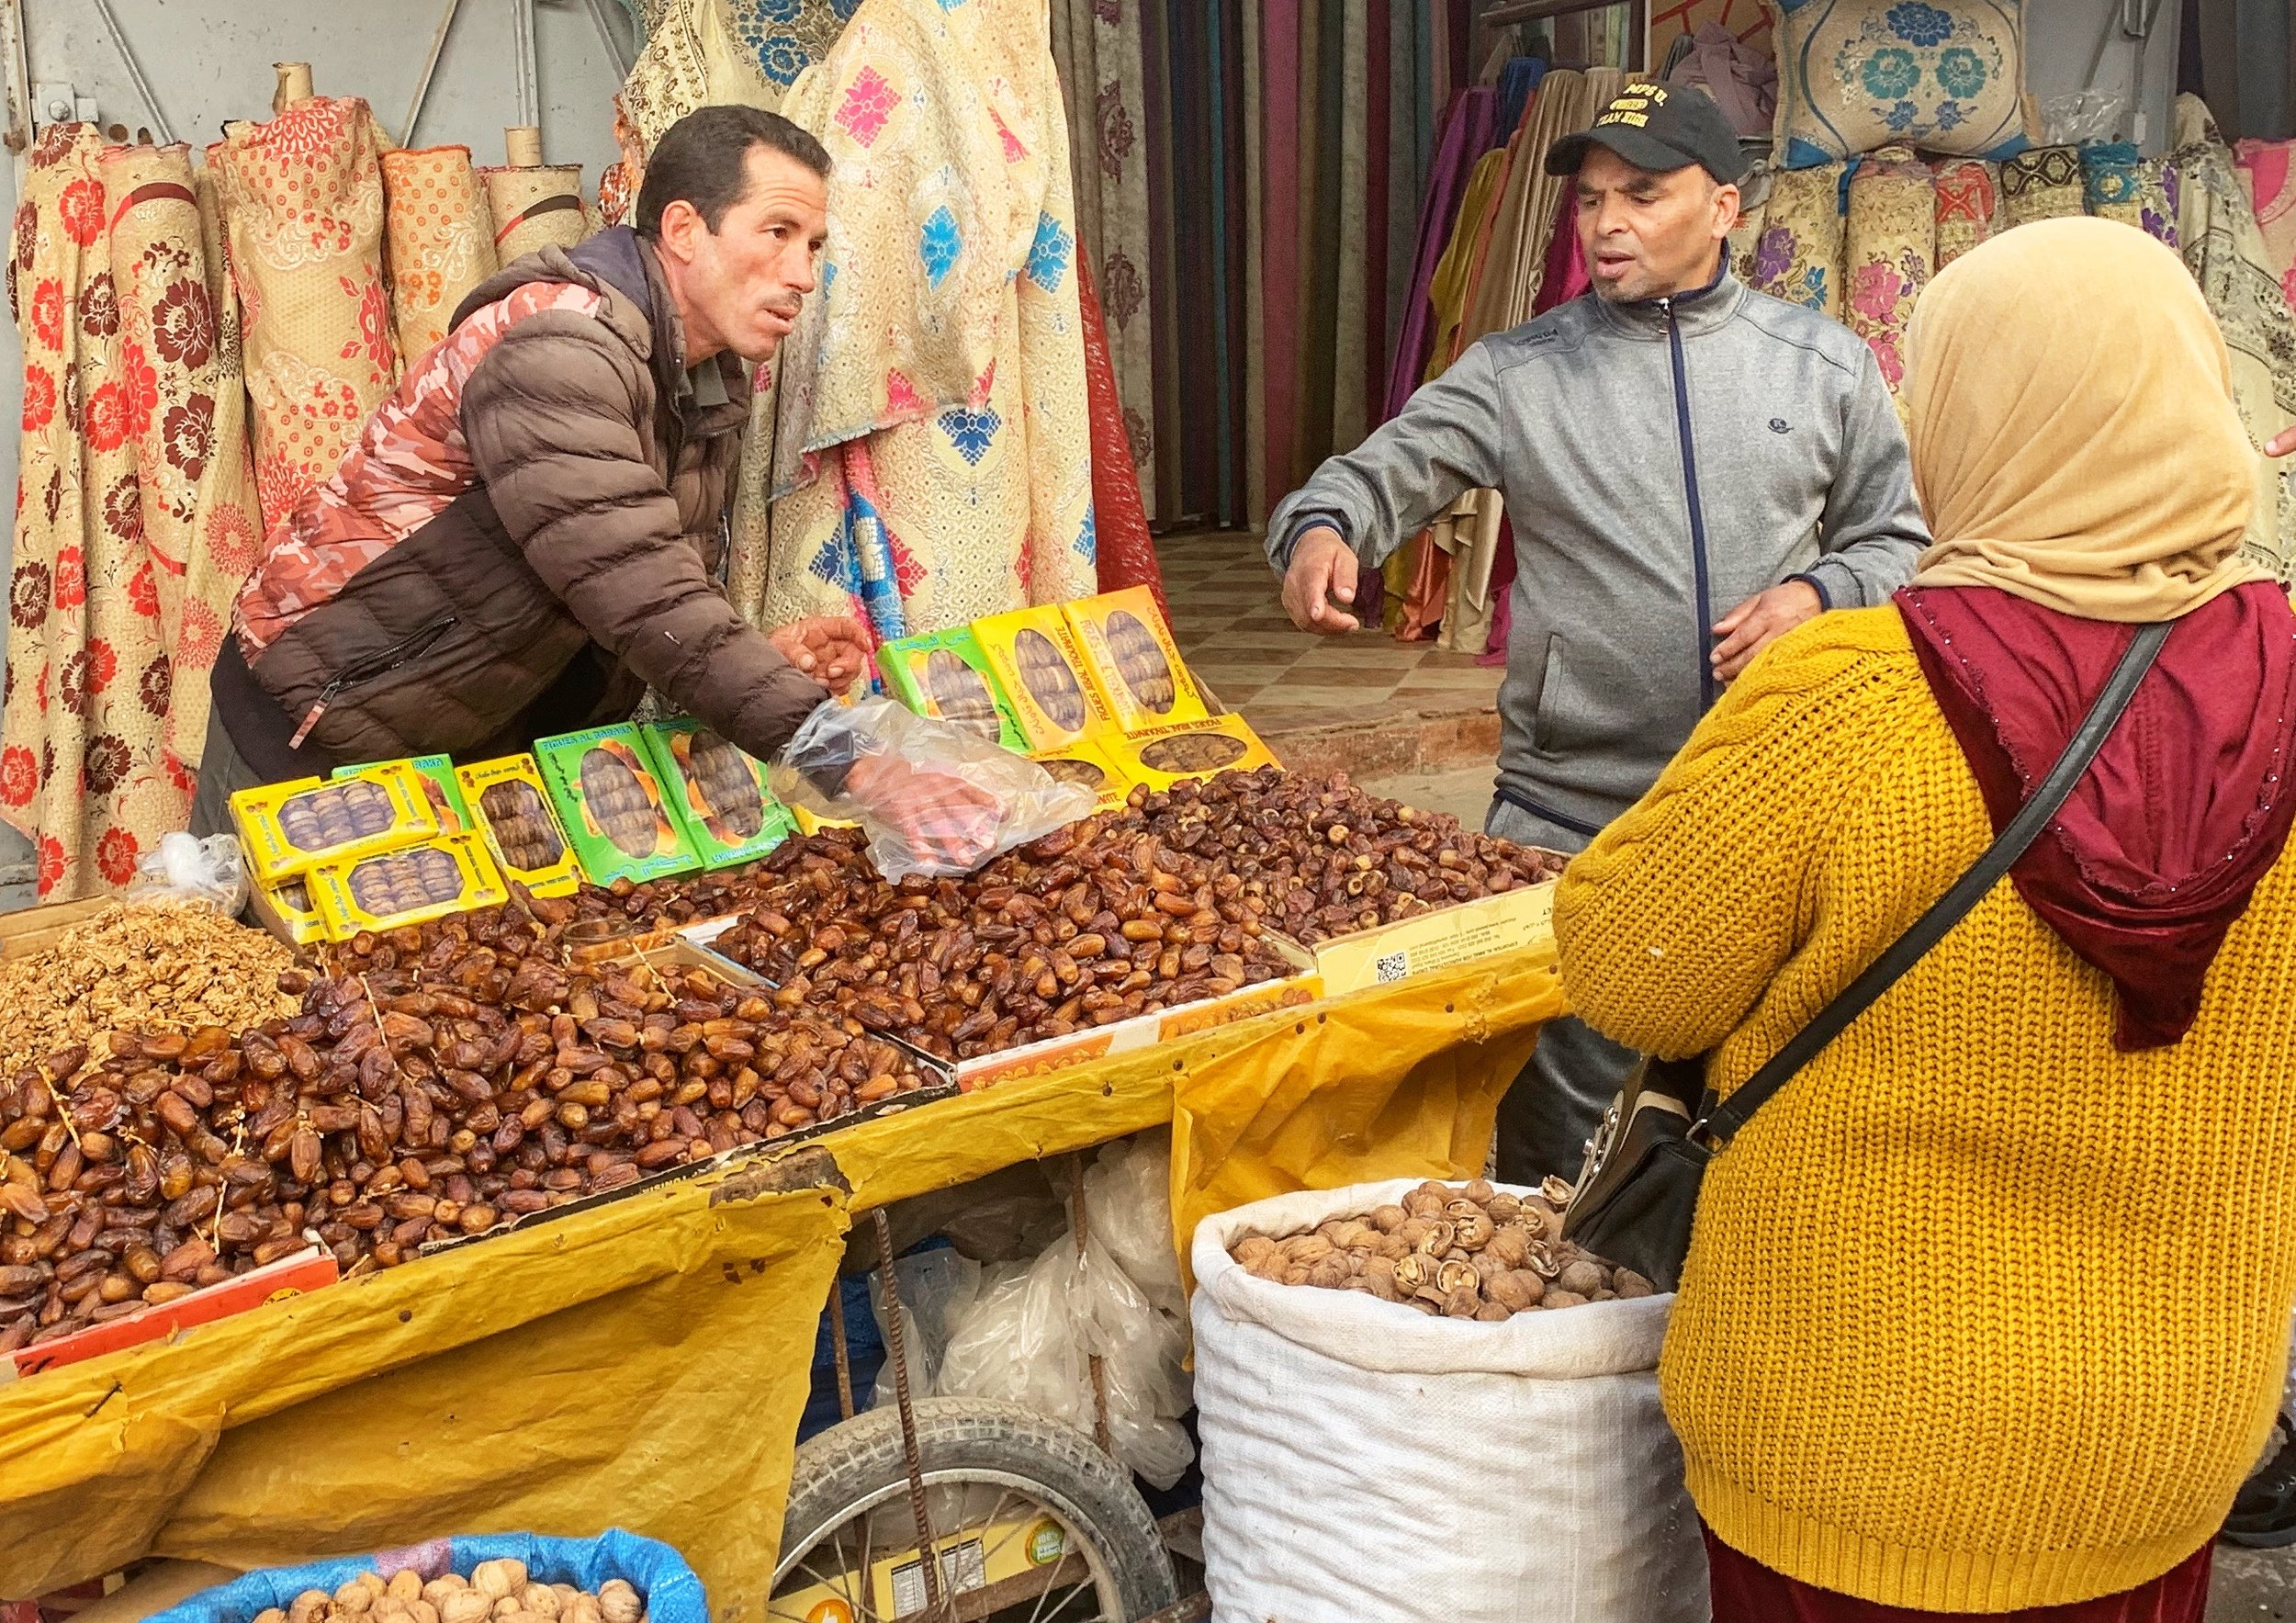 Copy of Merchant selling dates in downtown Medina, Rabat